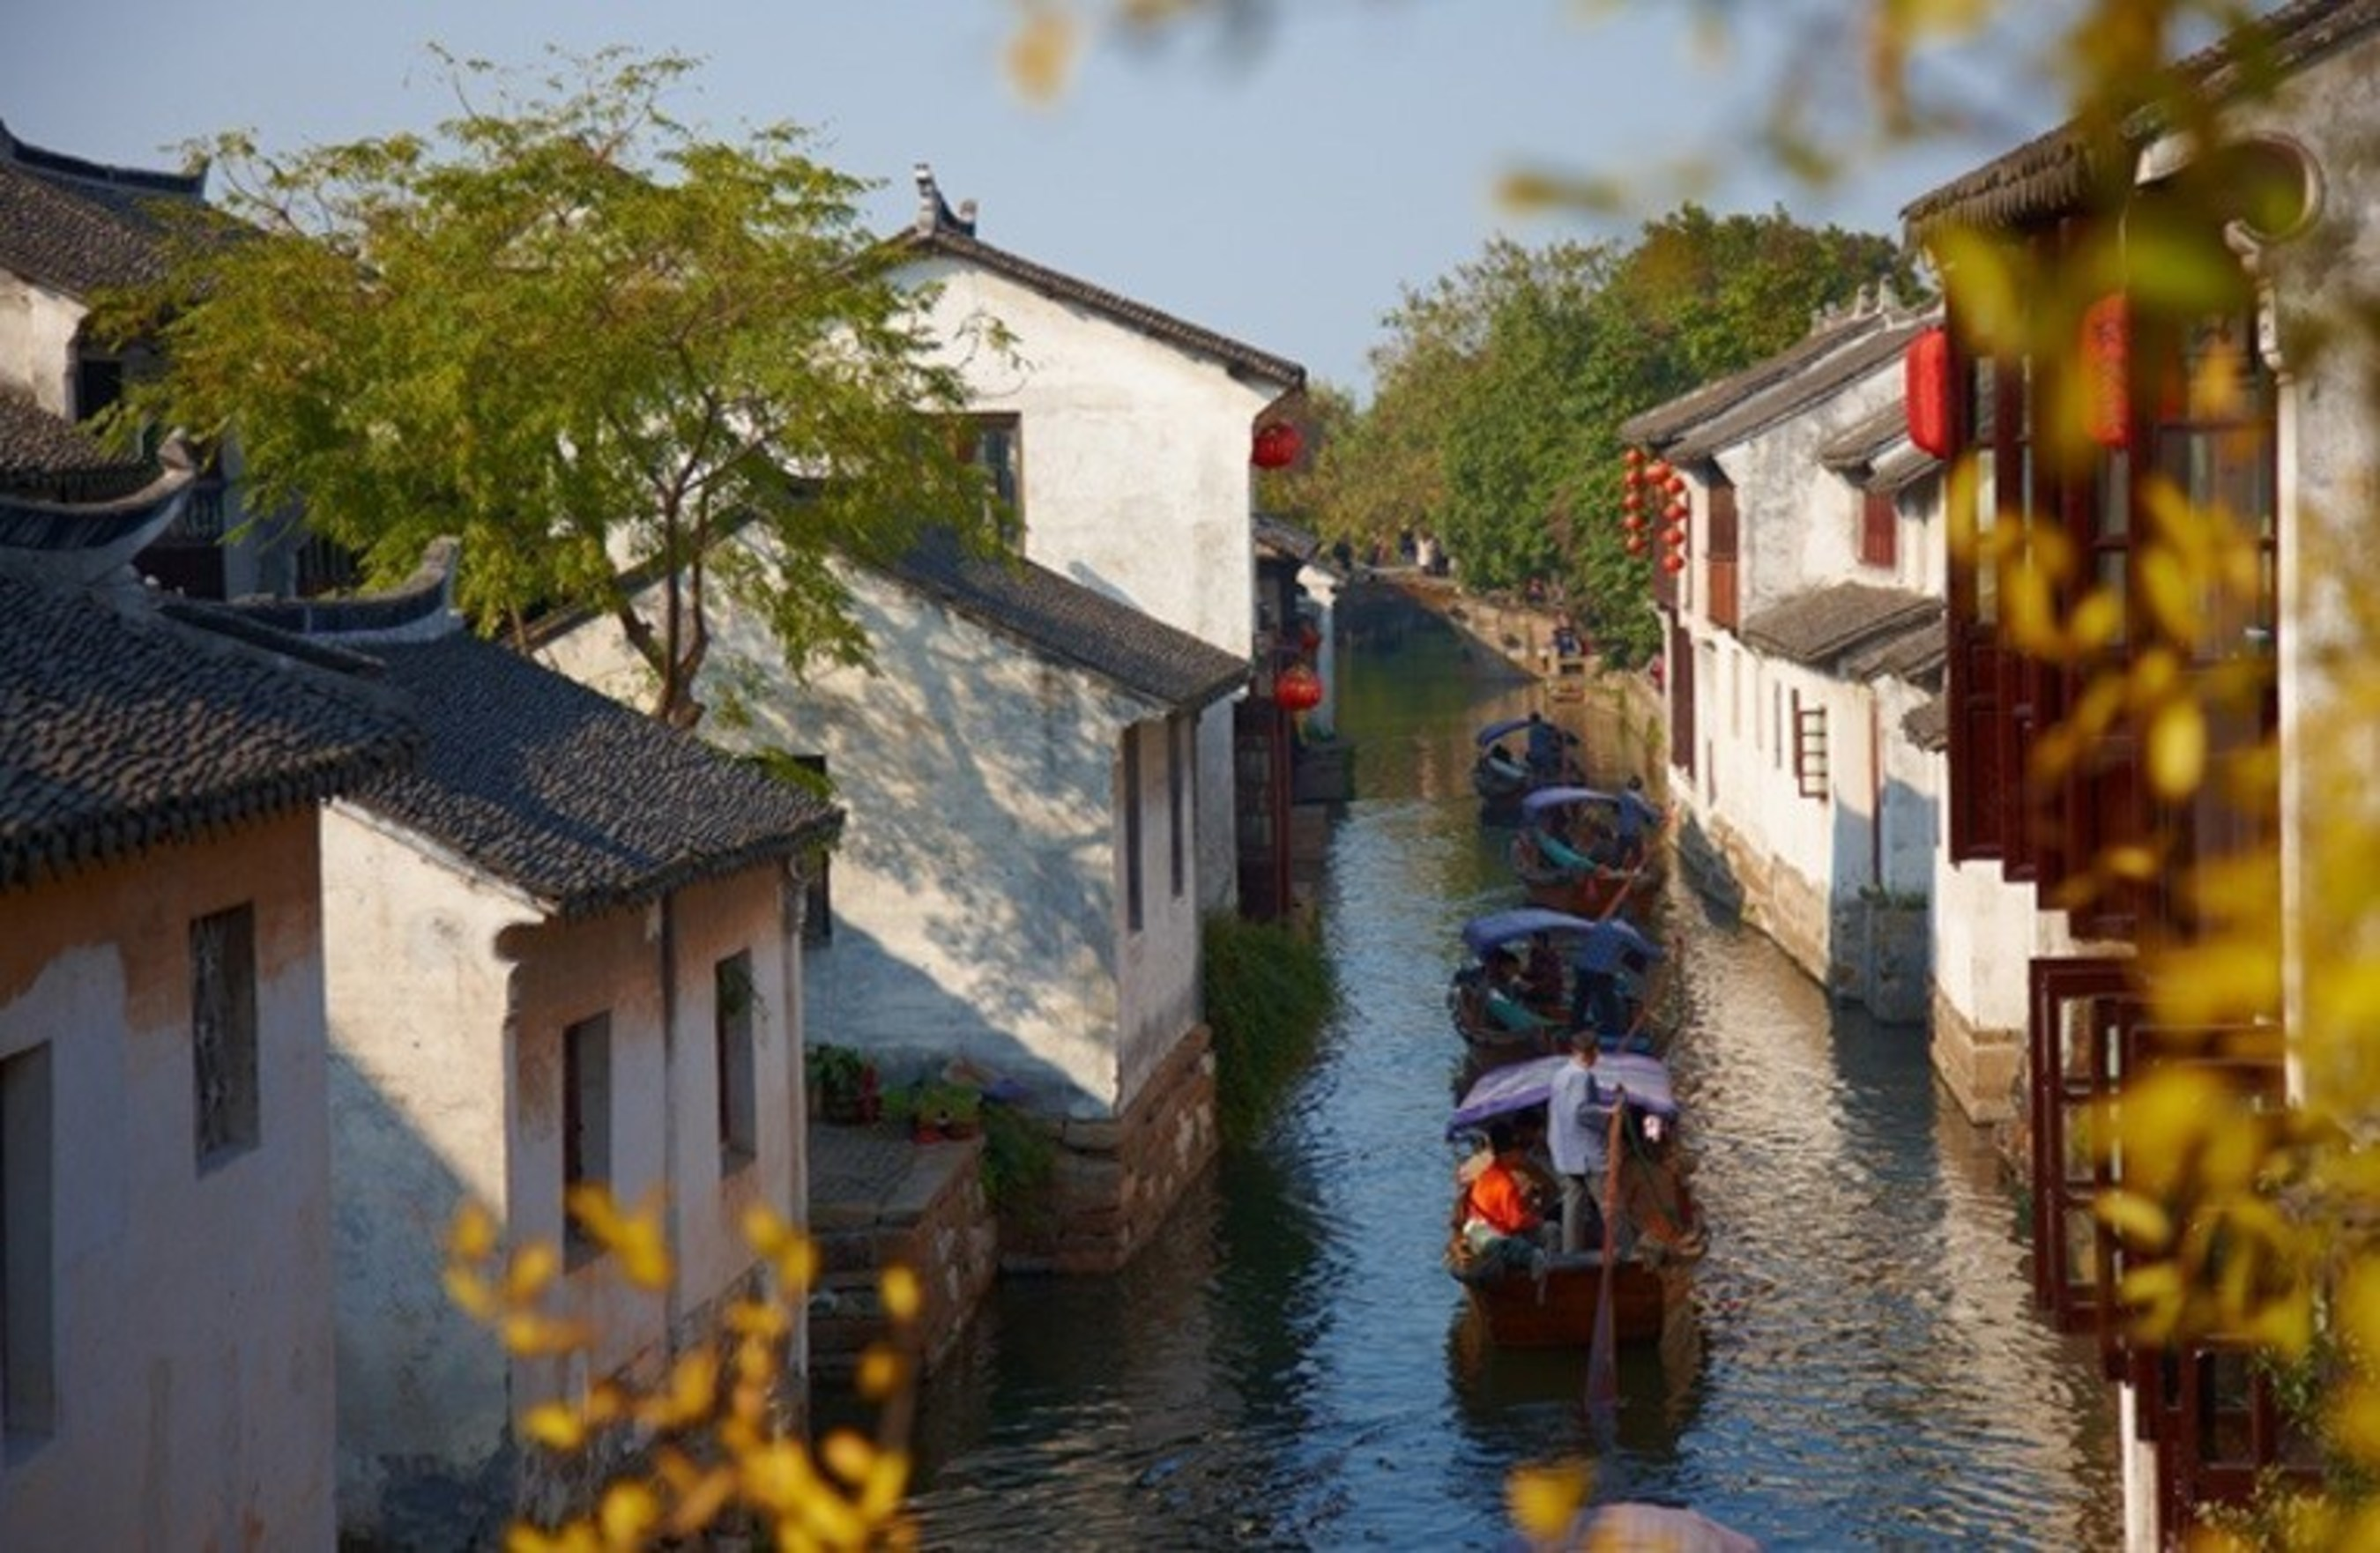 Zhouzhuang water town has been committed to bringing Chinese history and culture to global visitors.